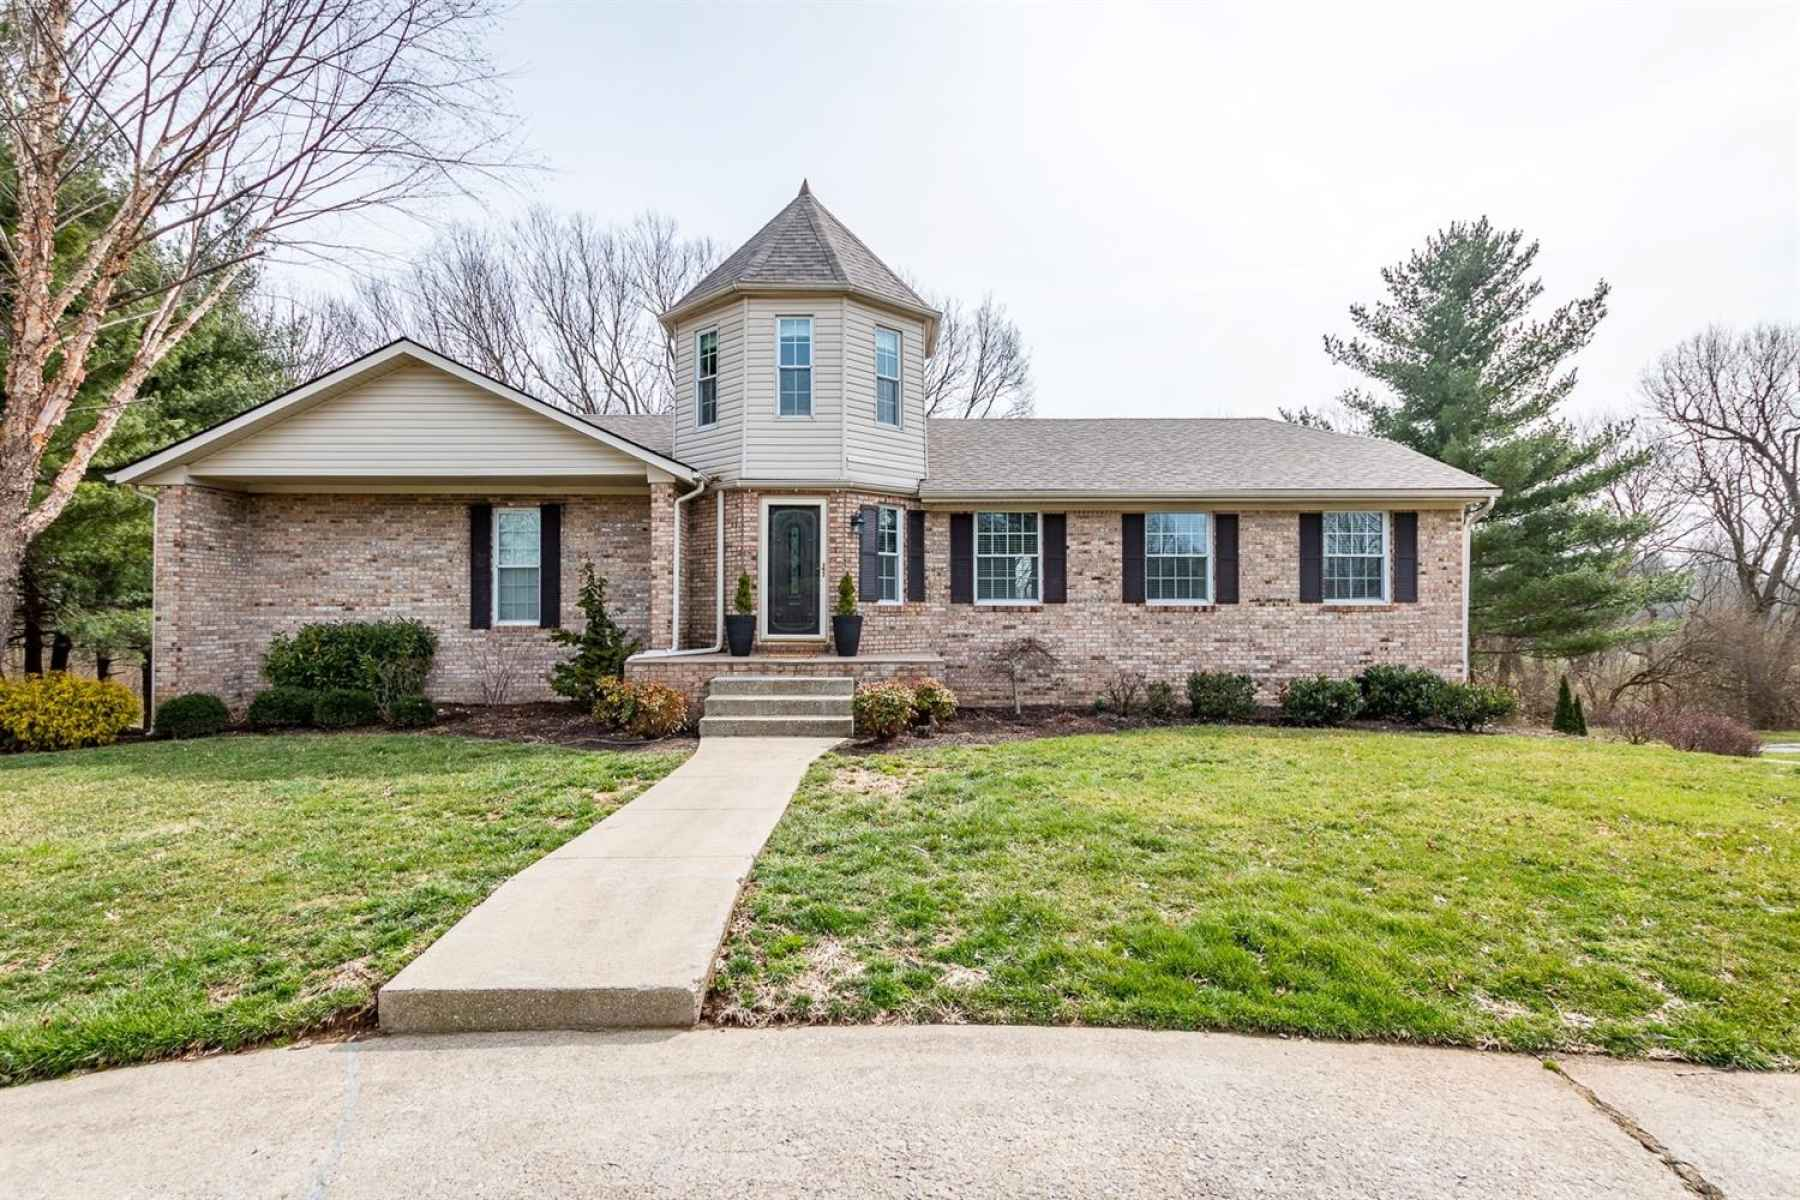 The home is situated on a lovely, wooded lot and has a circular driveway!